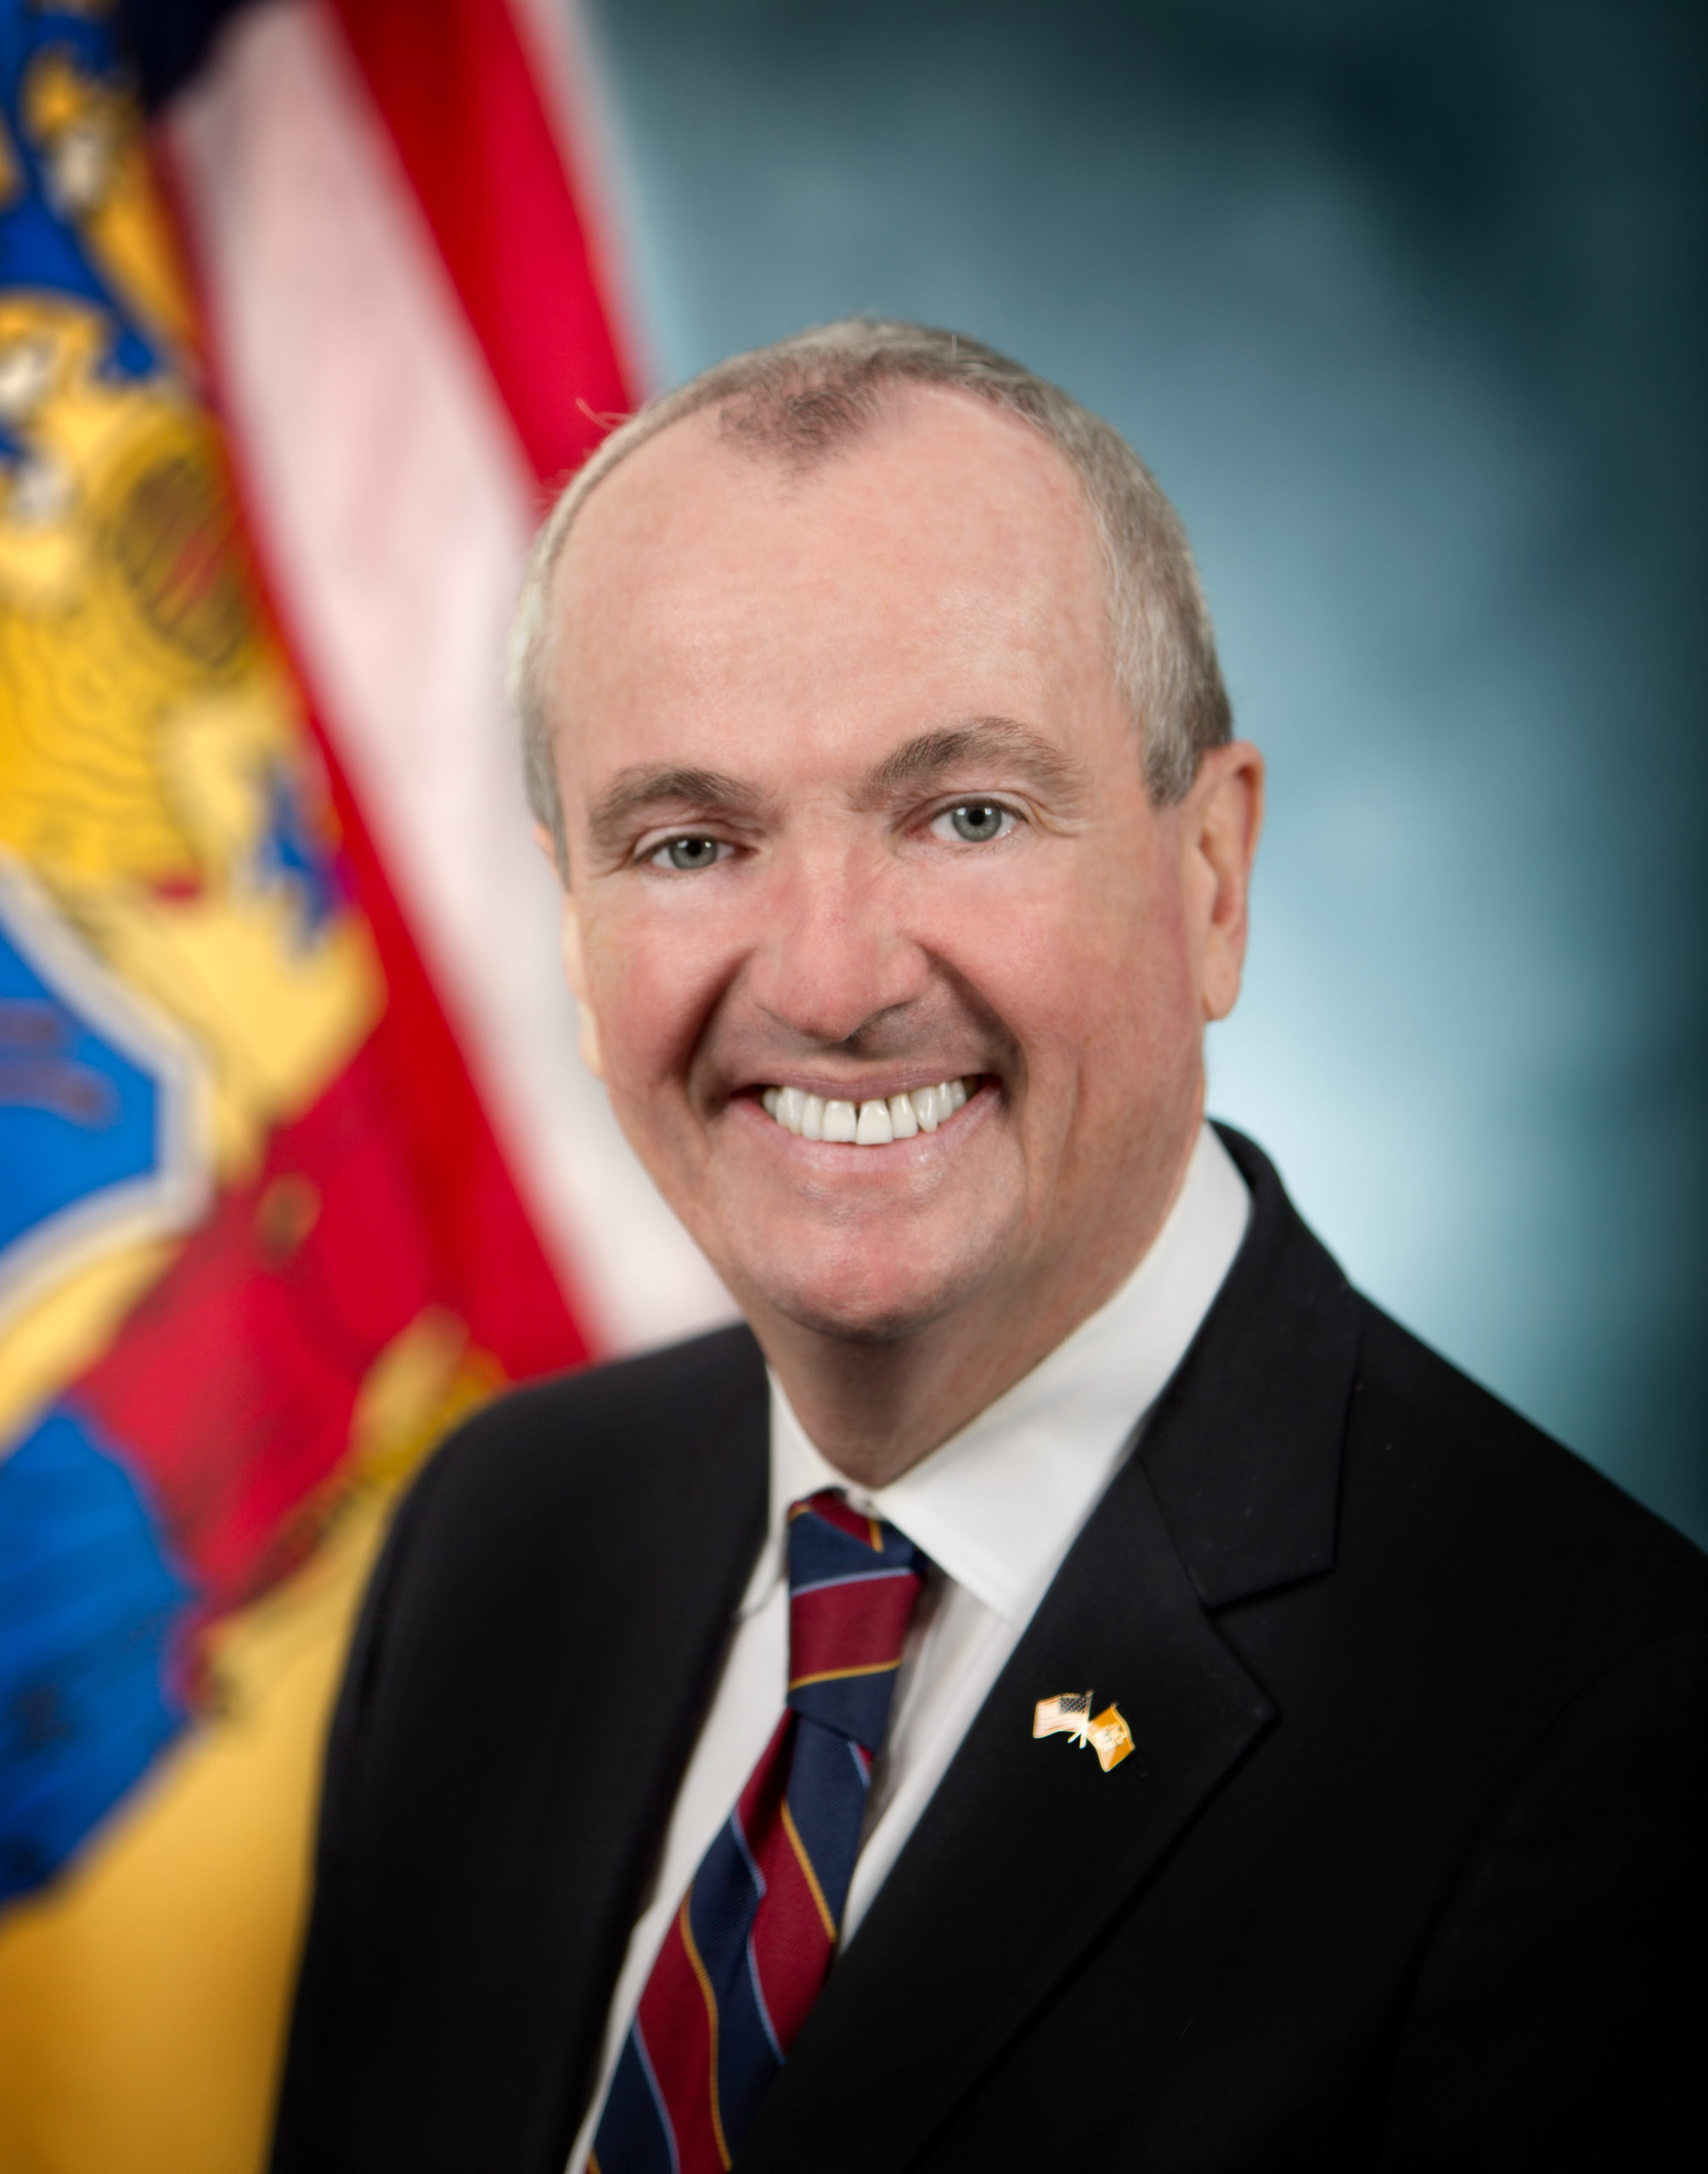 Governor Phil Murphy official headshot in Trenton, N.J. on Tuesday, Dec. 19, 2017. (Governor's Office/Tim Larsen)